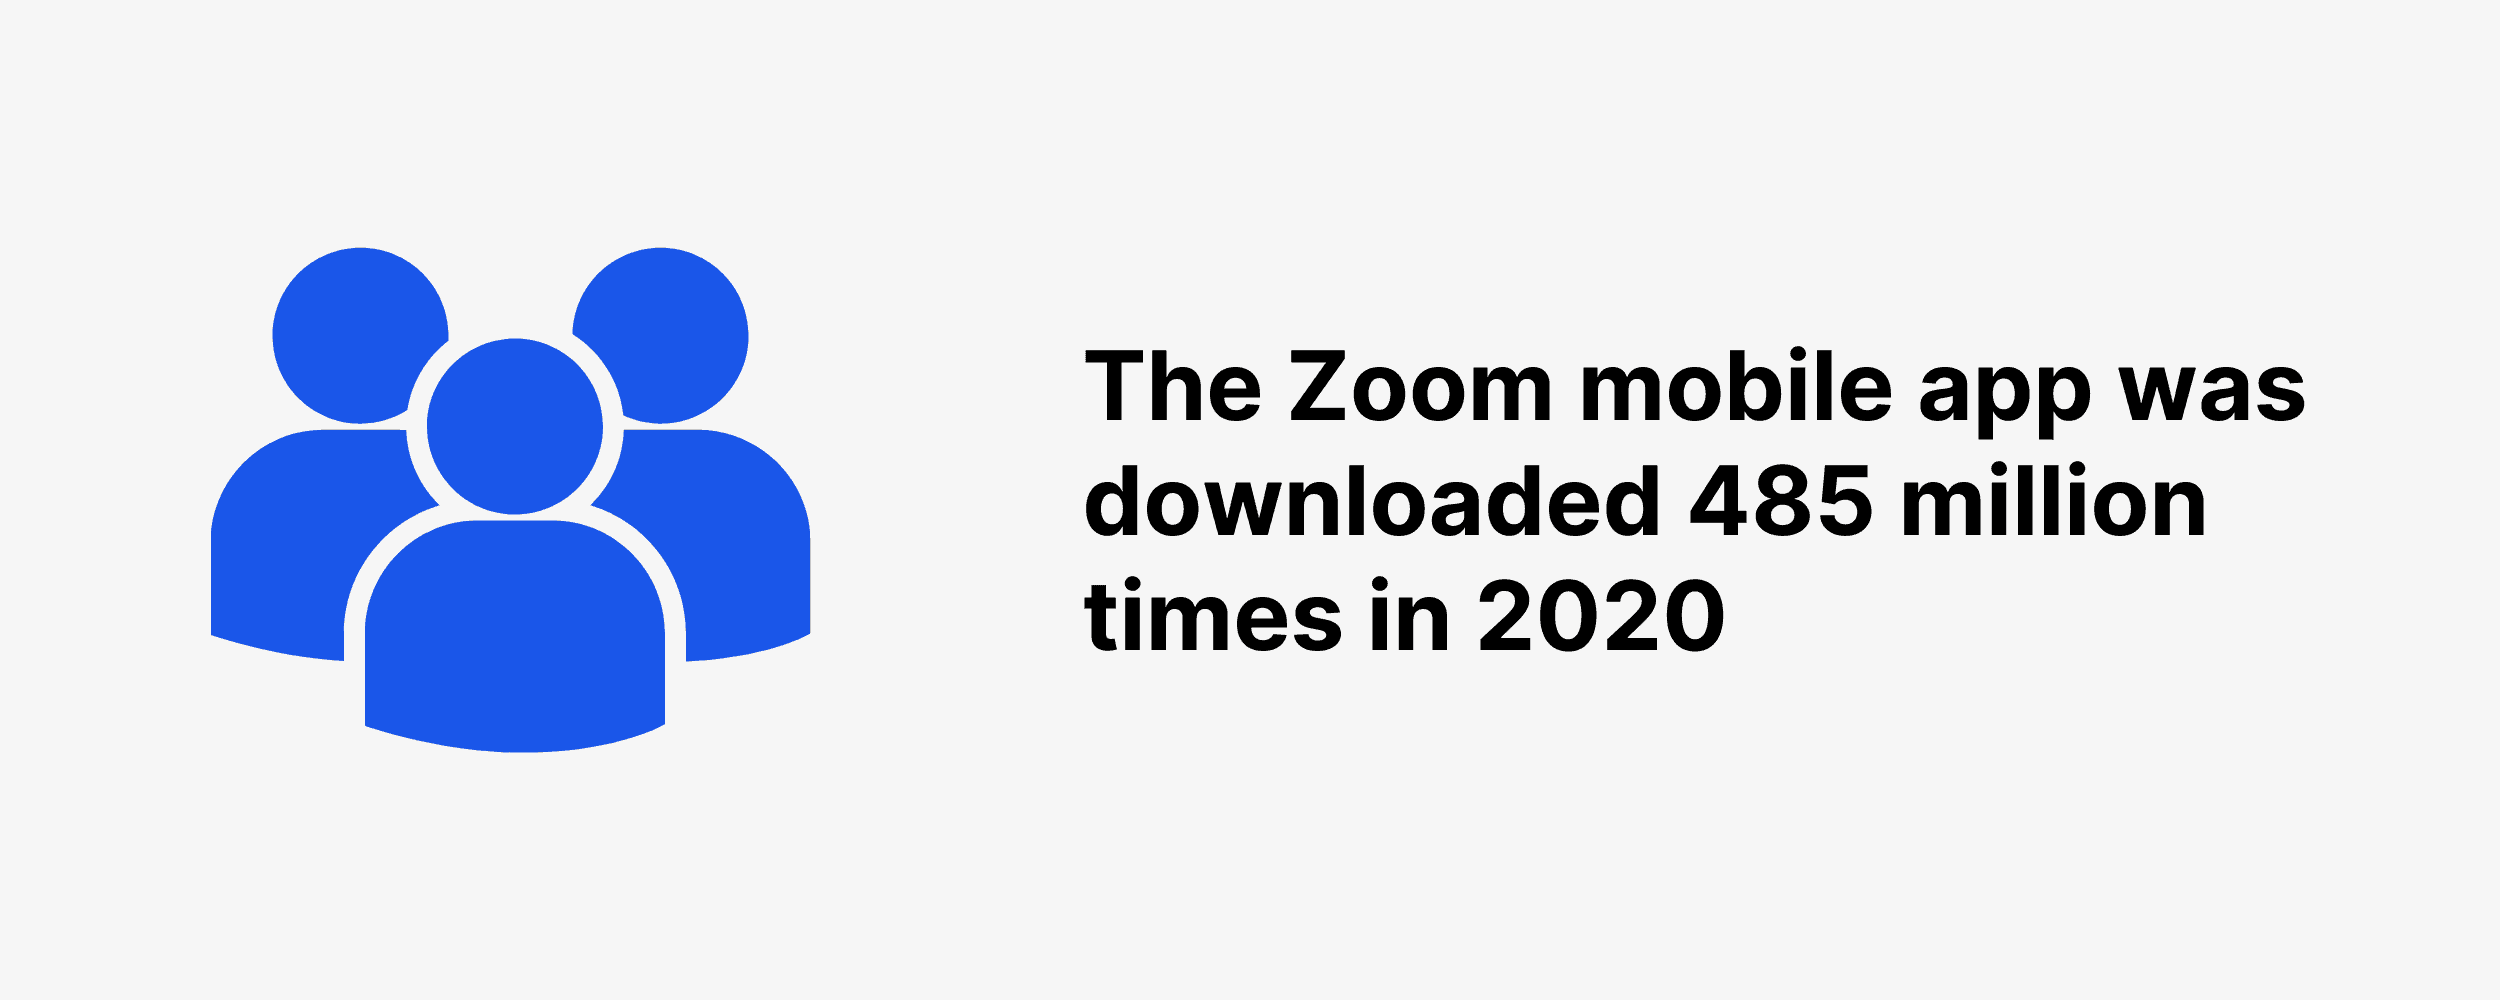 The Zoom mobile app was downloaded 485 million times in 2020